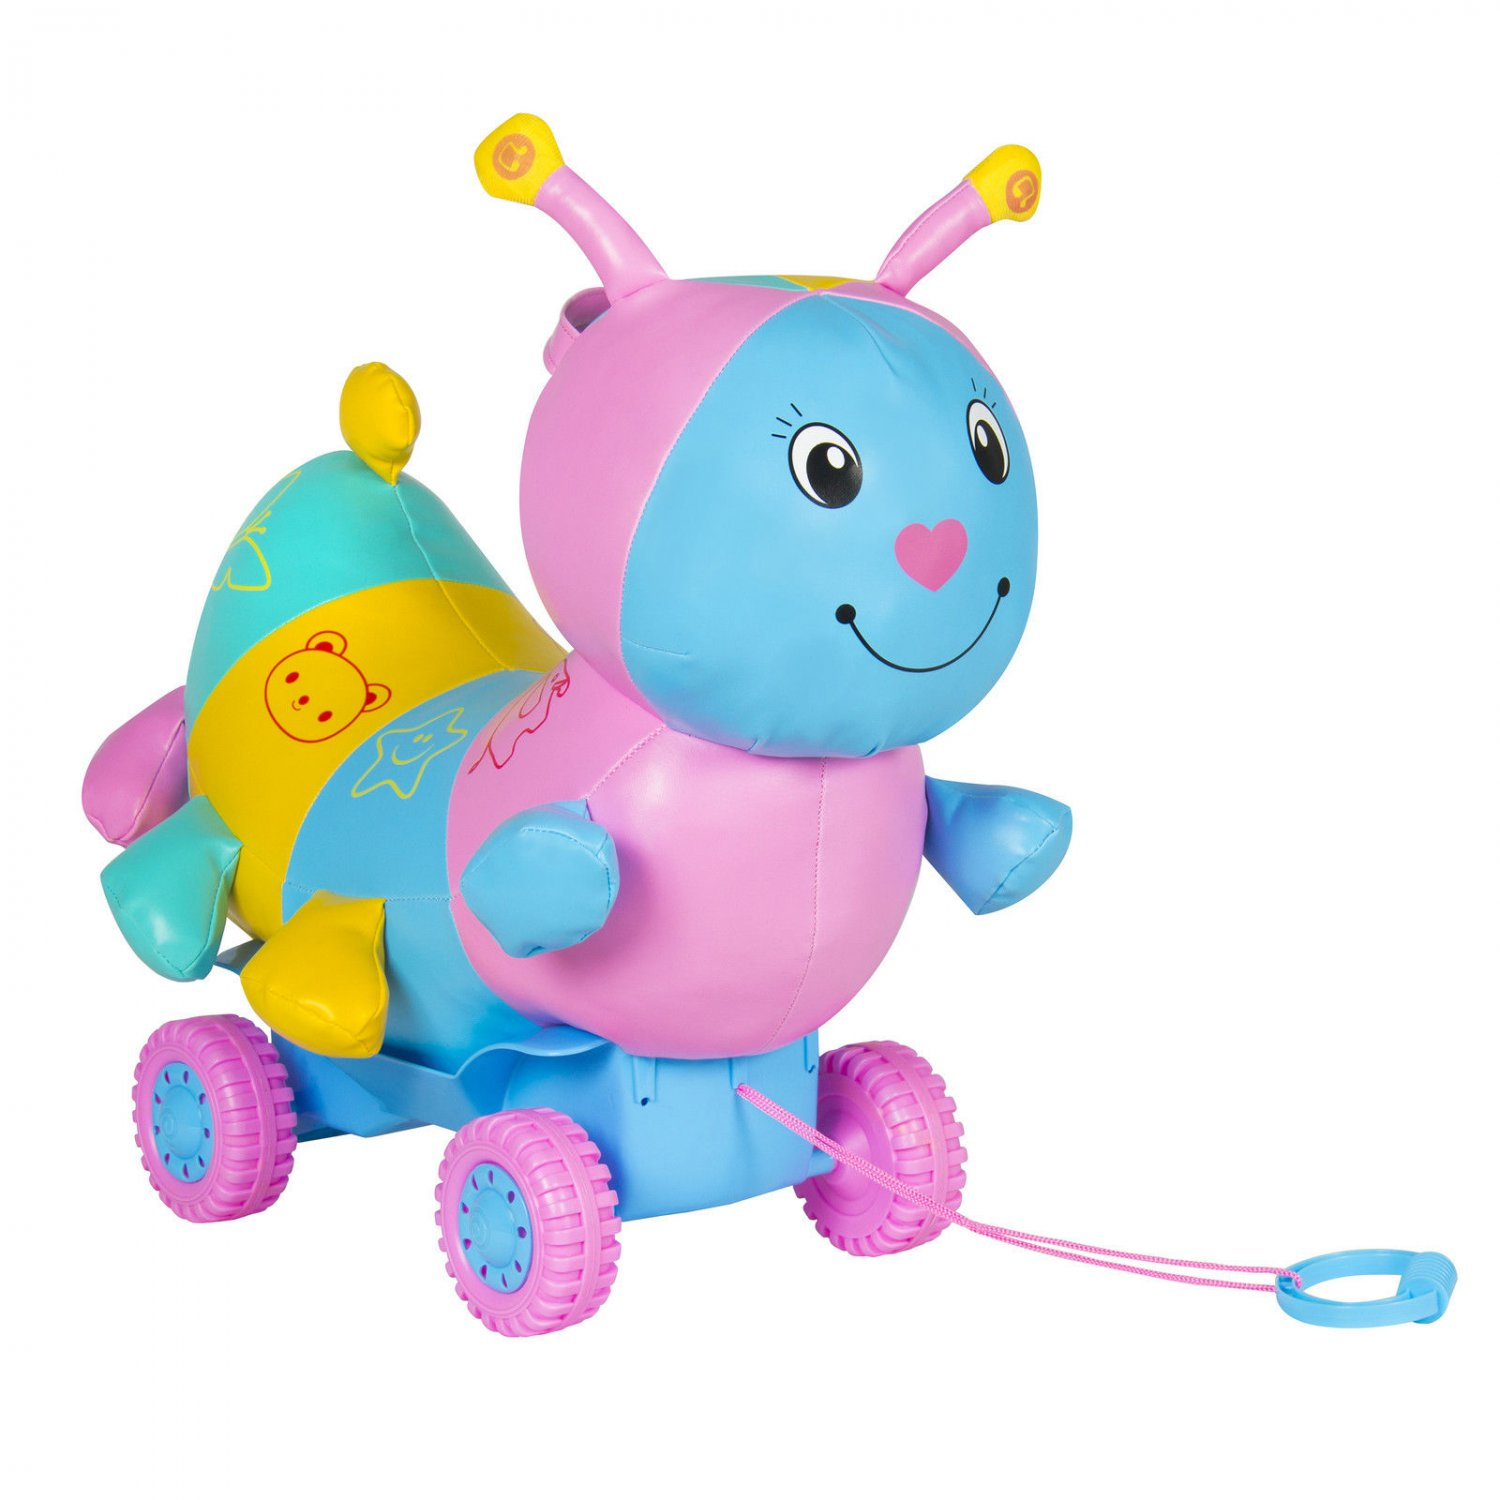 Educational Musical Ride On Toy Caterpillar Car W/ Wheels Kids Child Toys